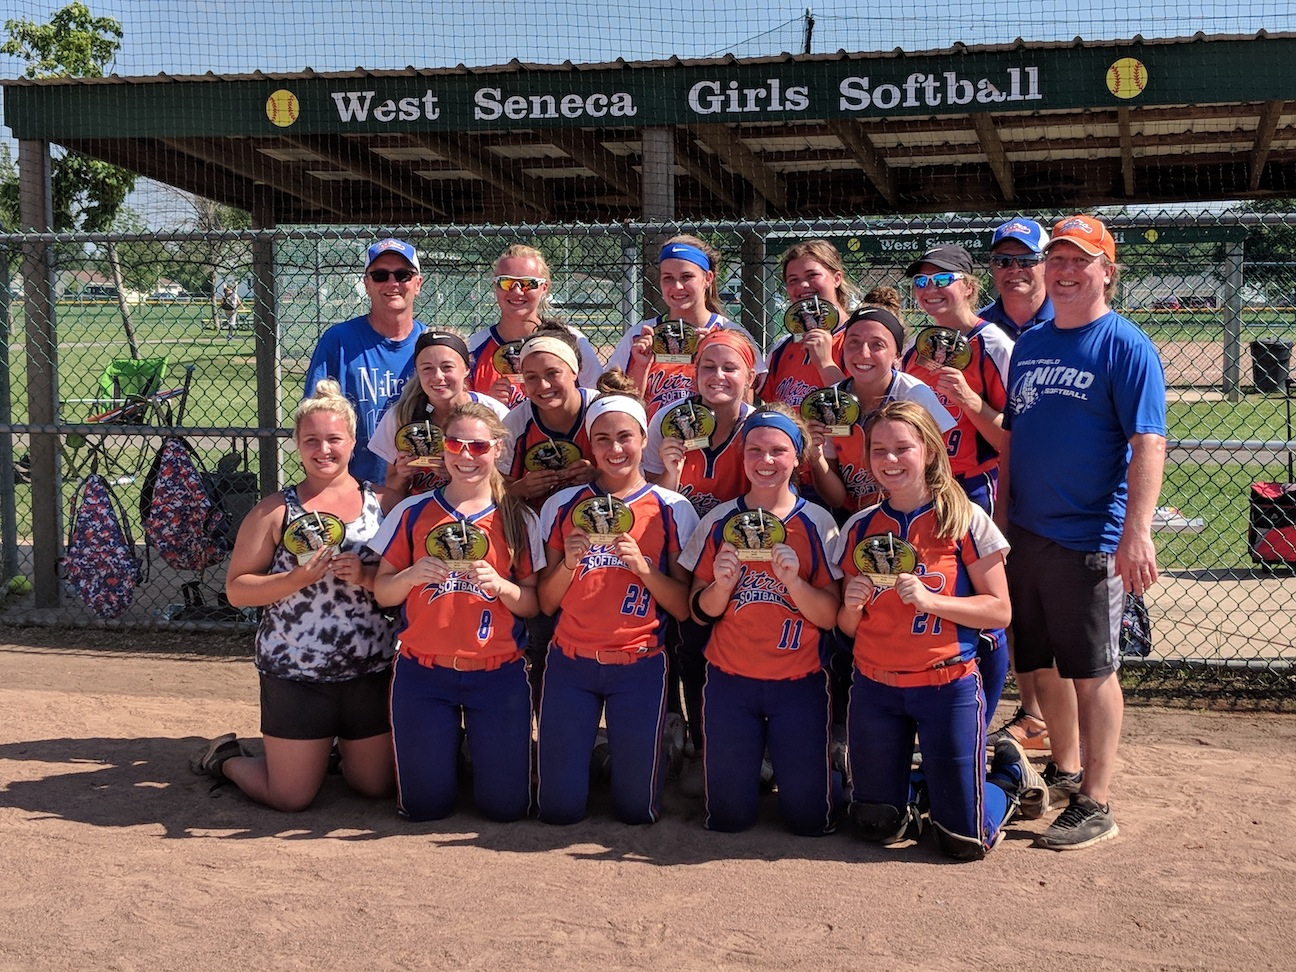 The championship team is pictured, from left, front, coach Ali Gonyea, Julia Mascaro, Jordan Graber, Abby Metzger and Sydney Crangle. Second row: Hanna Muehlbauer, Madison Evarts, Hannah Reid, Tiara Borzillire and coach Tom Metzger. Top row: Manager Chris Crangle, Mackenzie Quider, Bailey Fleischauer, Kaylee Haner, Laney Wieclaw and coach Joe Mascaro. (Photo submitted by Christopher Crangle)